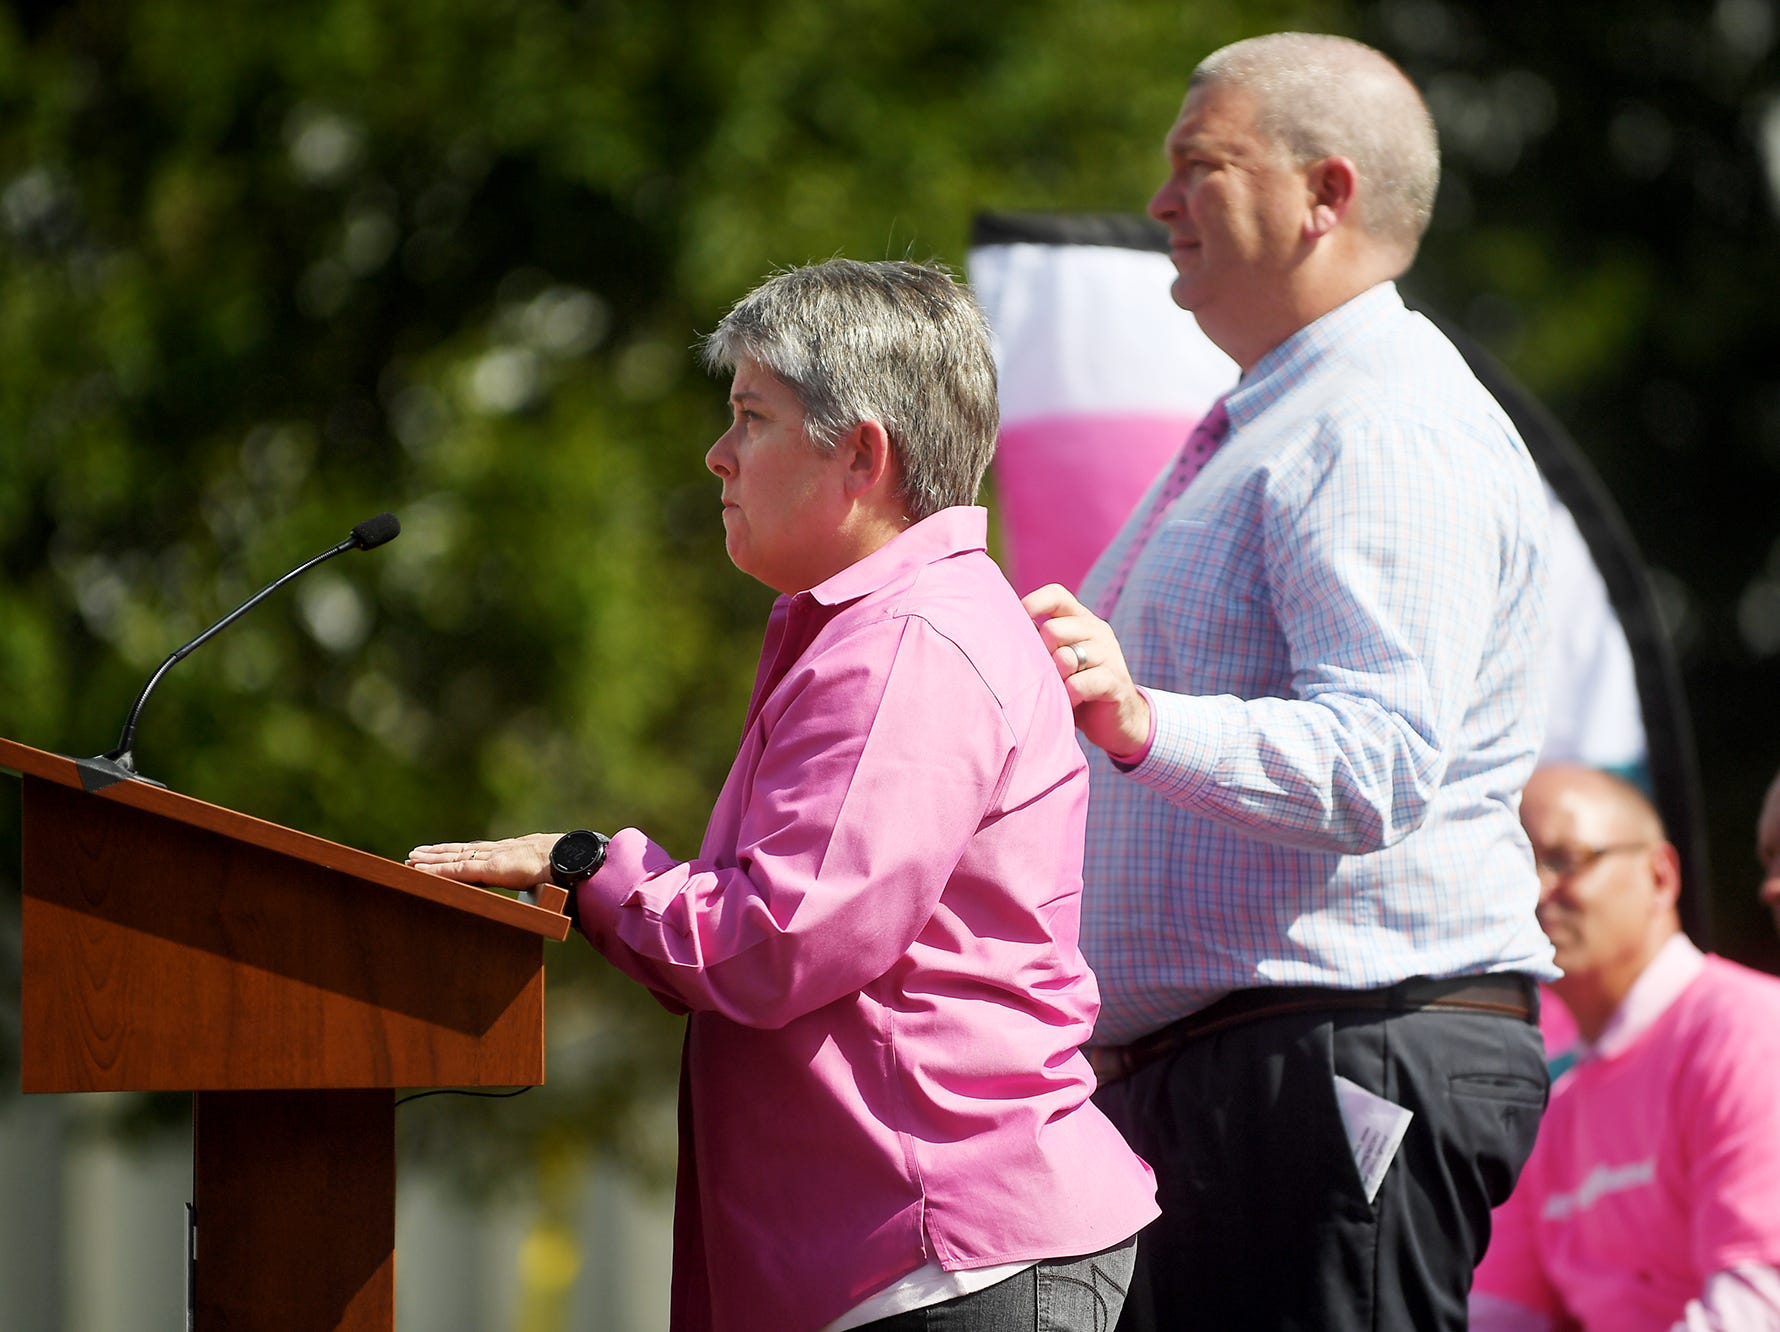 Hope Lineberry, a breast cancer survivor, speaks about her experience to 630 BorgWarner employees as her husband and Bahnson safety director, Danny, comforts her Oct. 1, 2018.